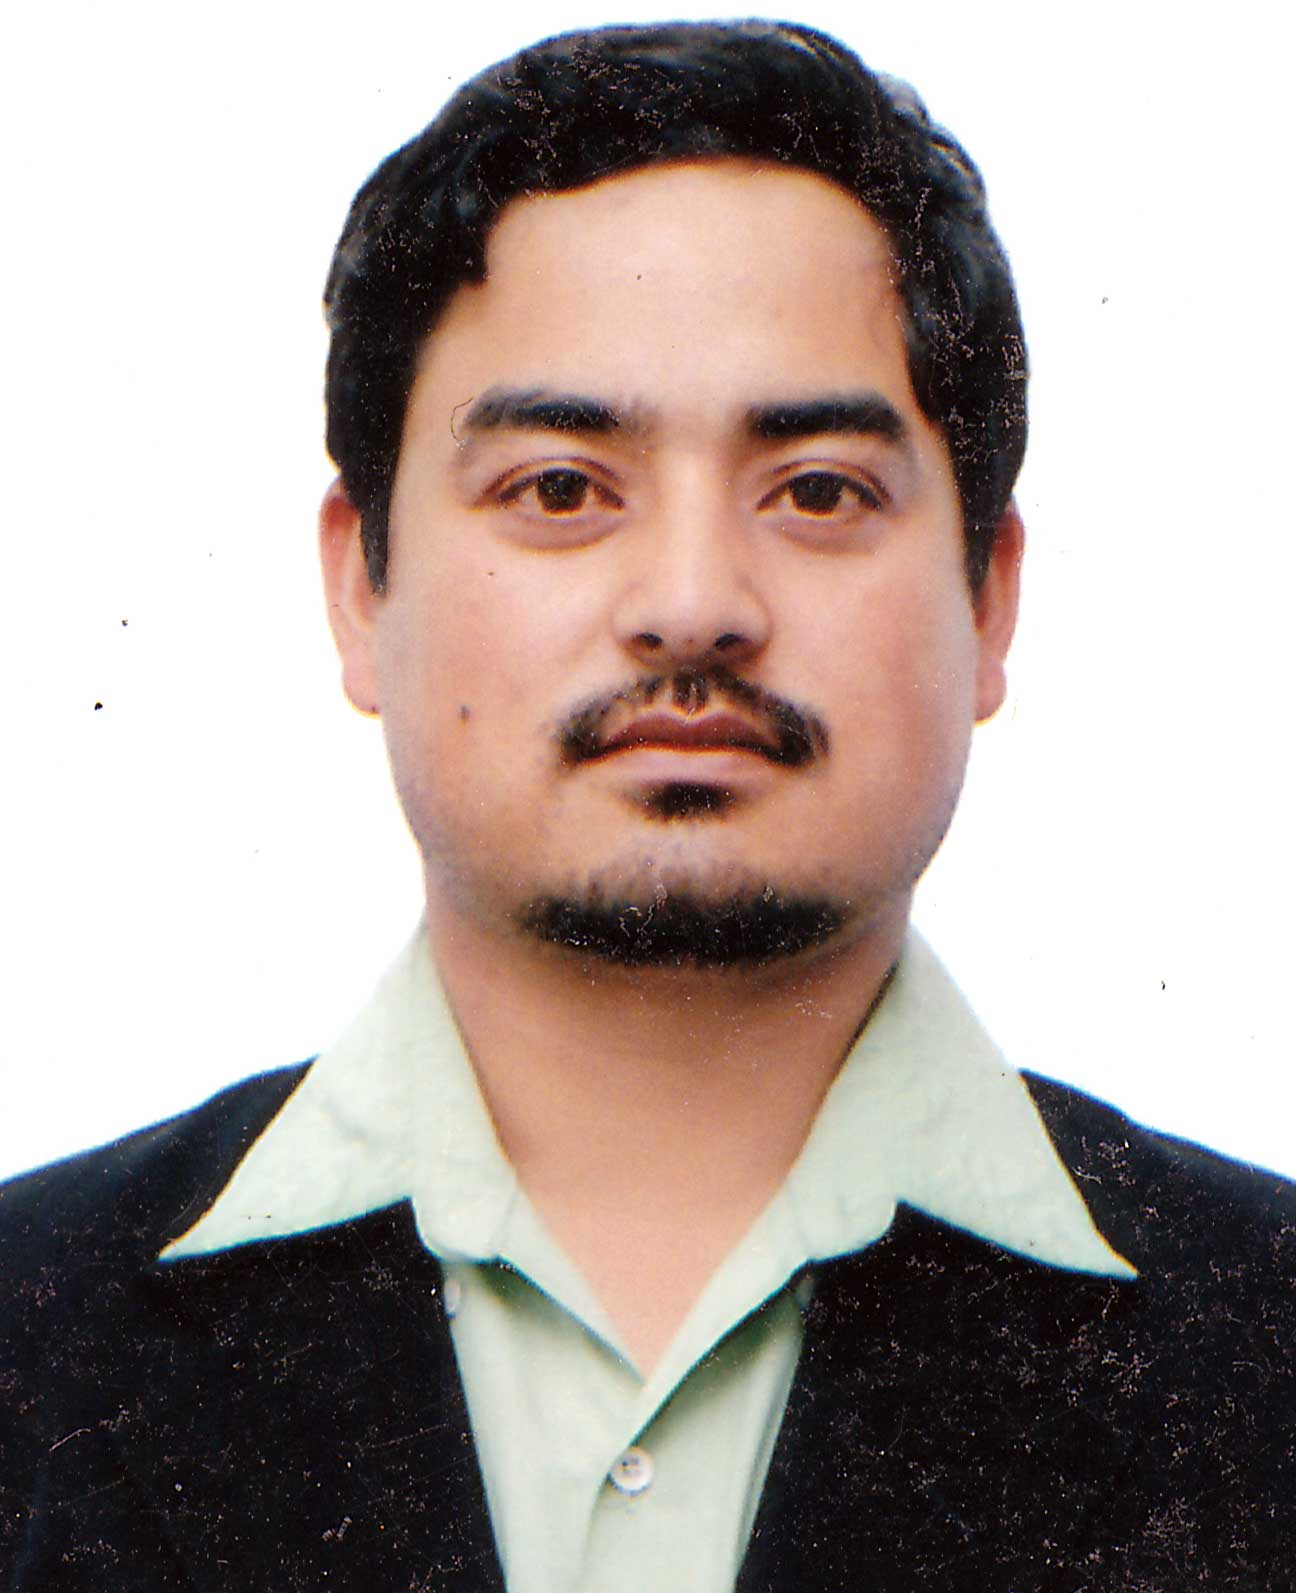 Mr. Rup Narayan Shrestha